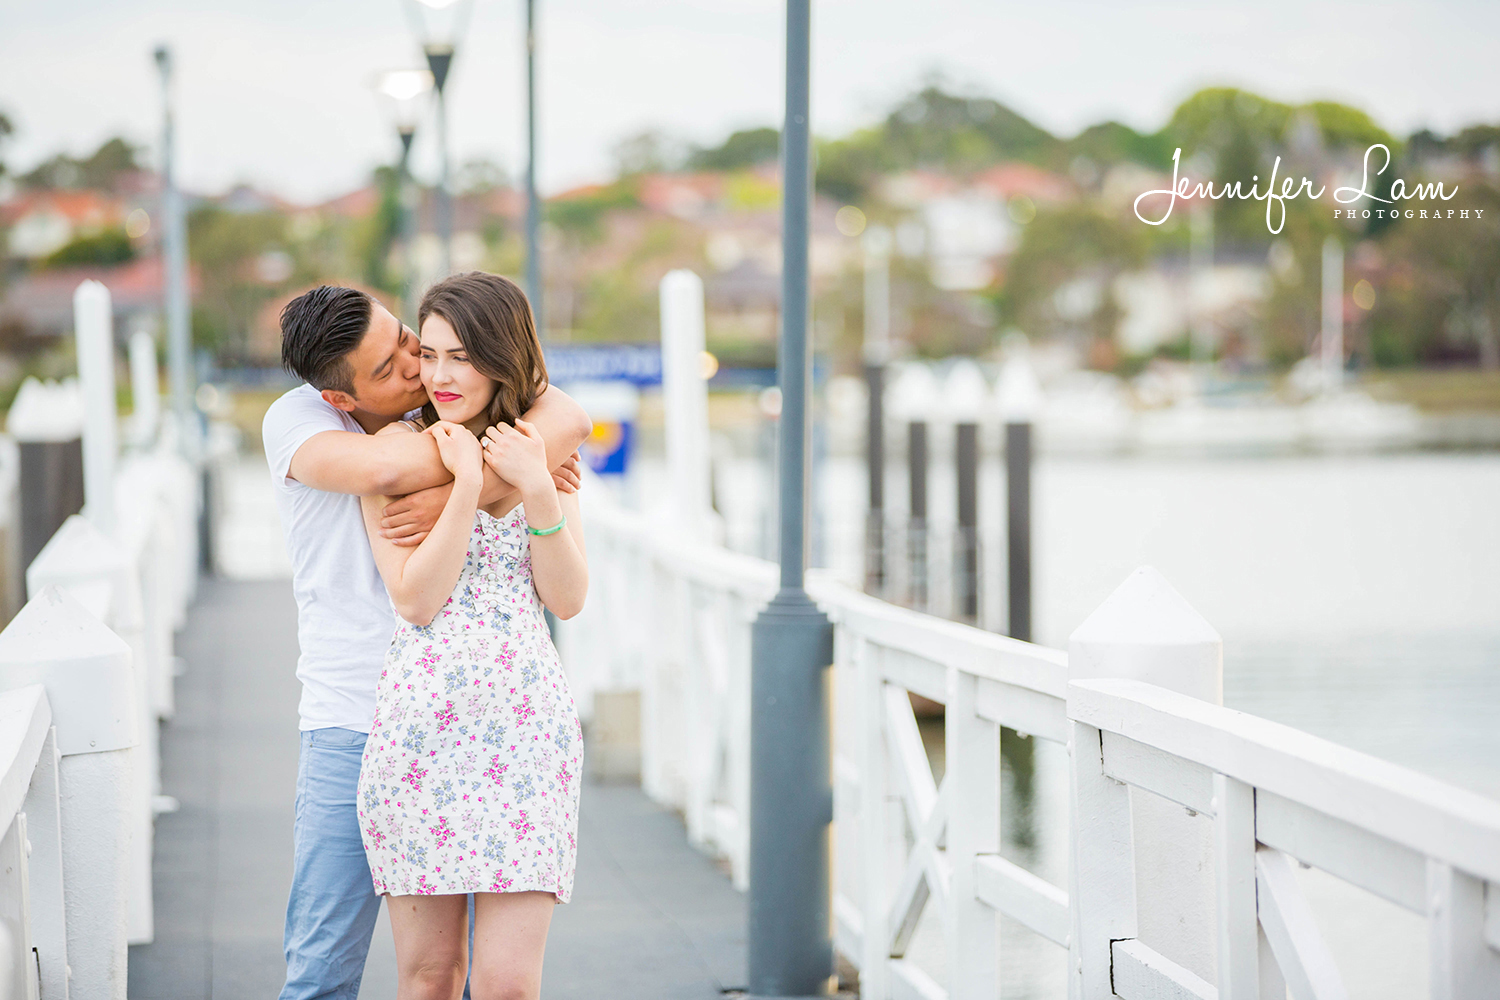 Sydney Pre-Wedding Photography - Jennifer Lam Photography (3a).jpg